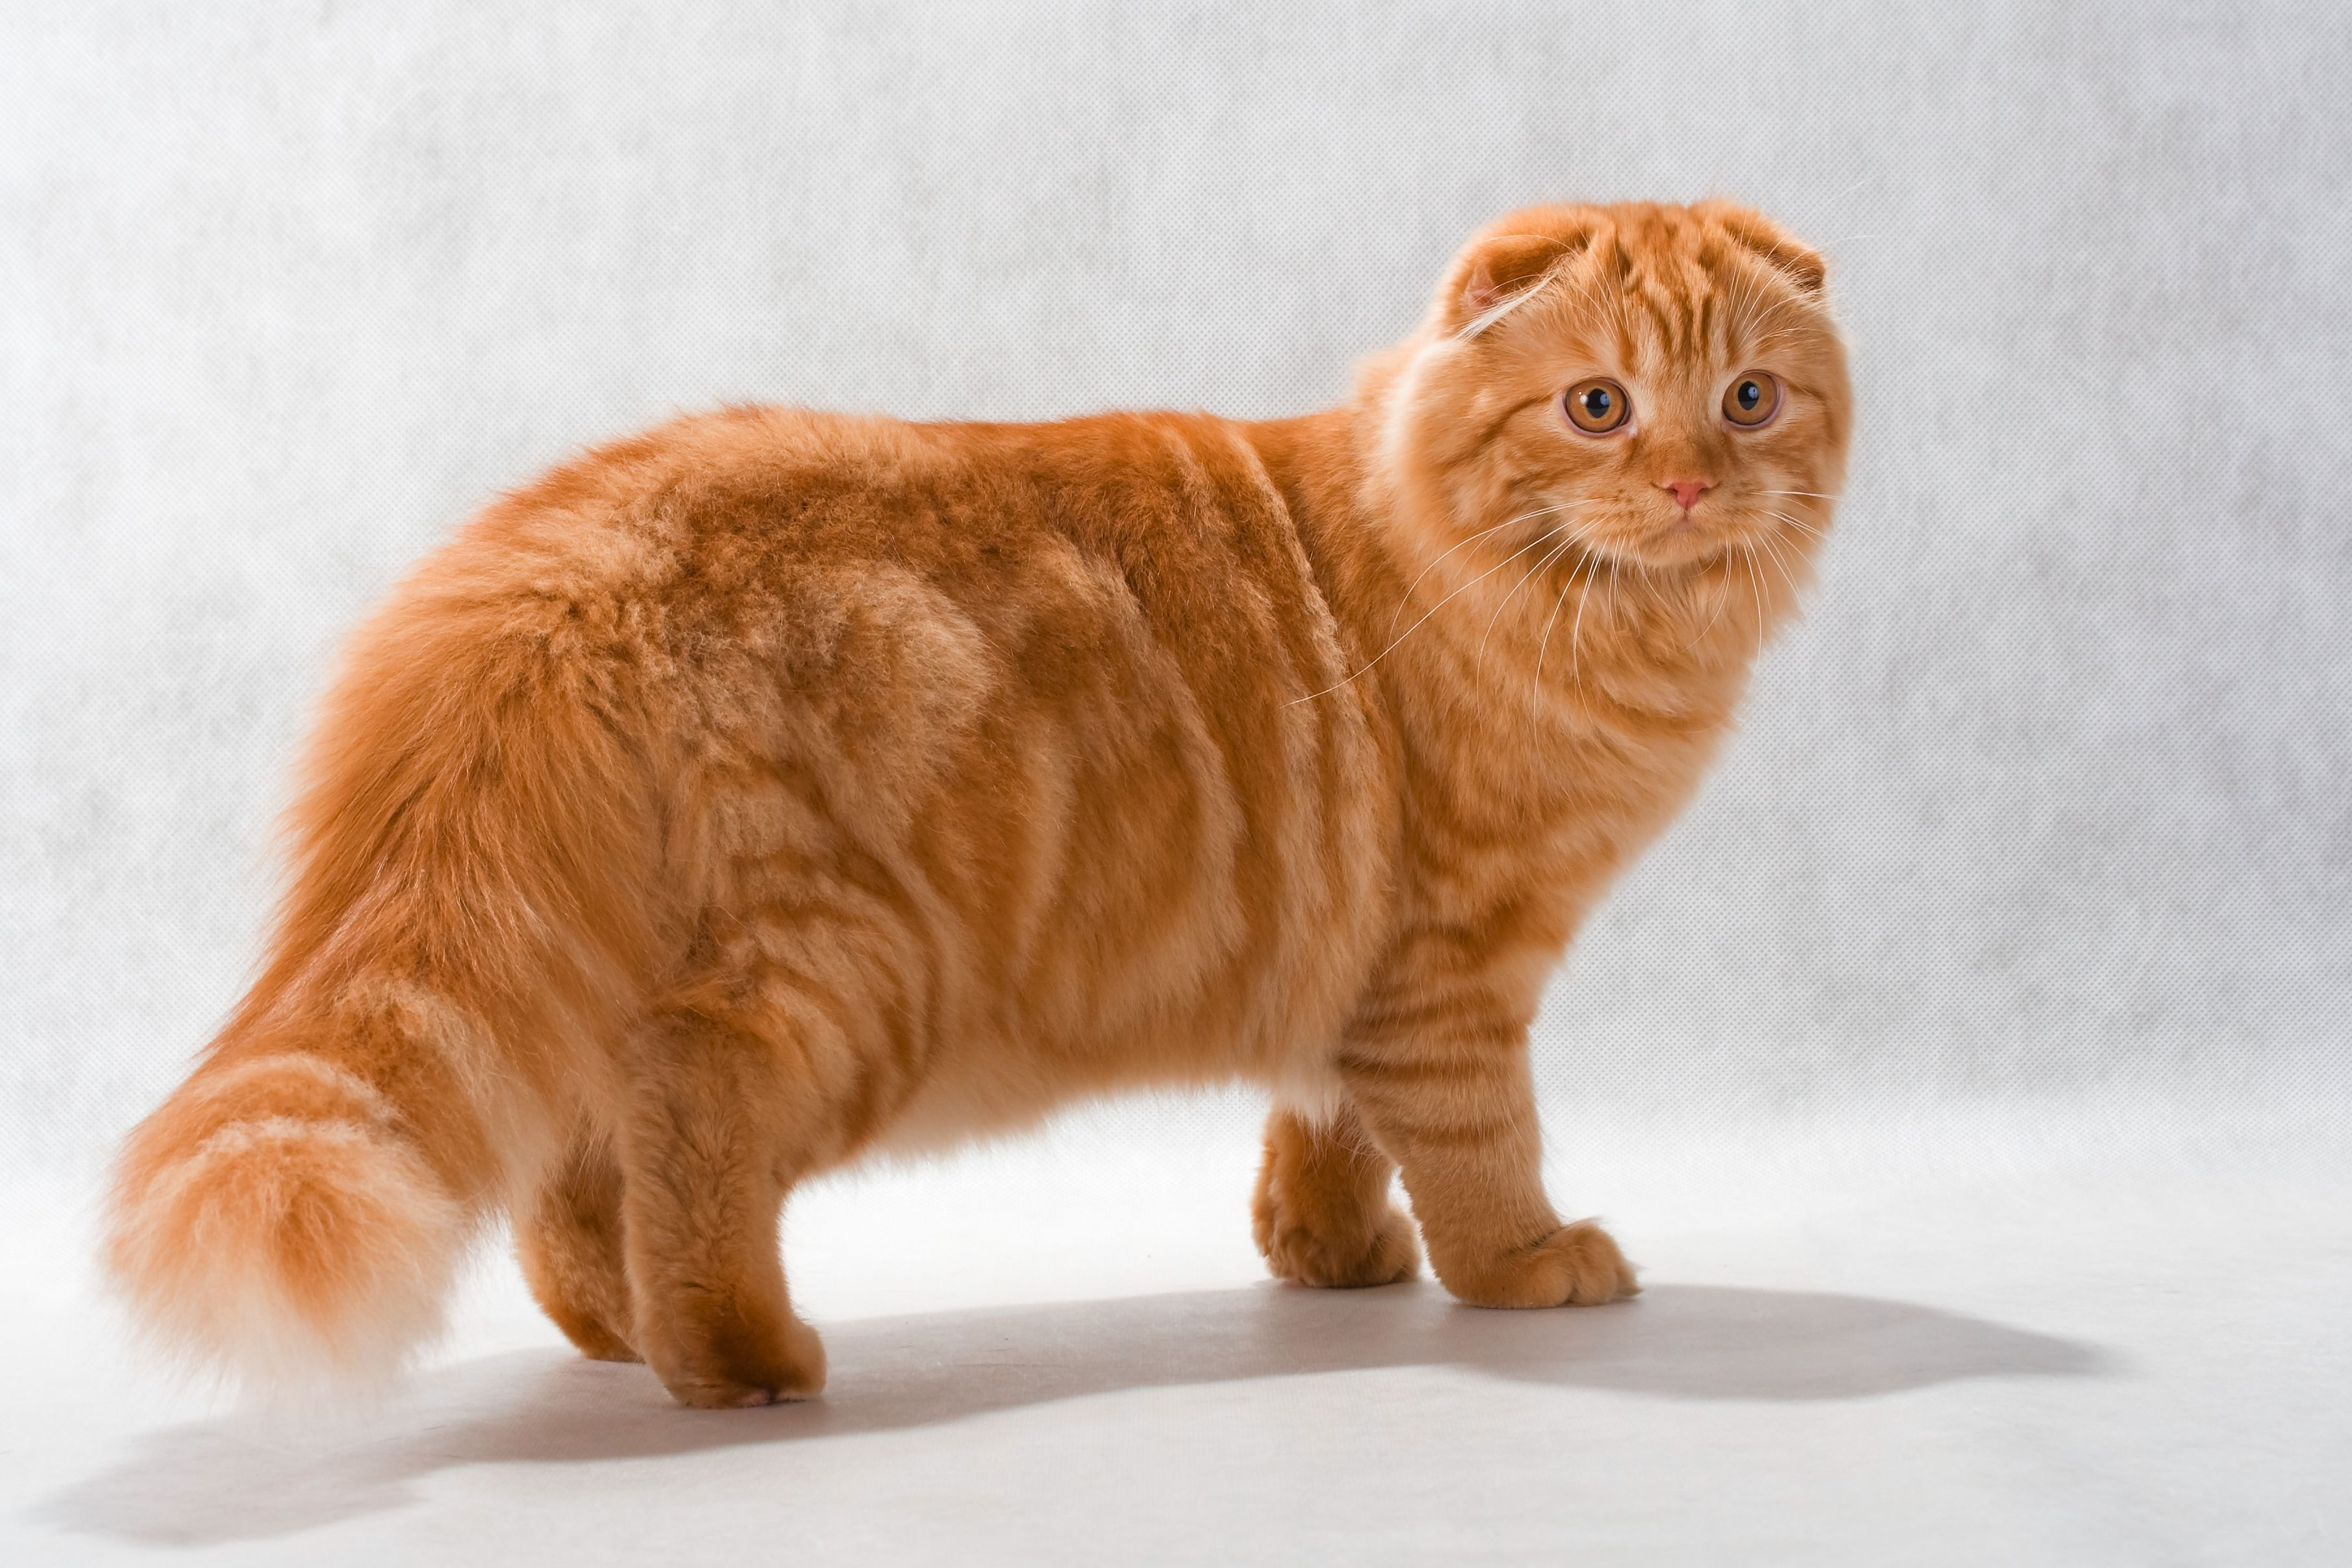 Up To 90 Of Cats Over The Age Of 12 Have Arthritis Meowch Discover The 6 Warning Signs To Watch Out For In Your Kitty And H Pet Plan Pets Cats And Kittens